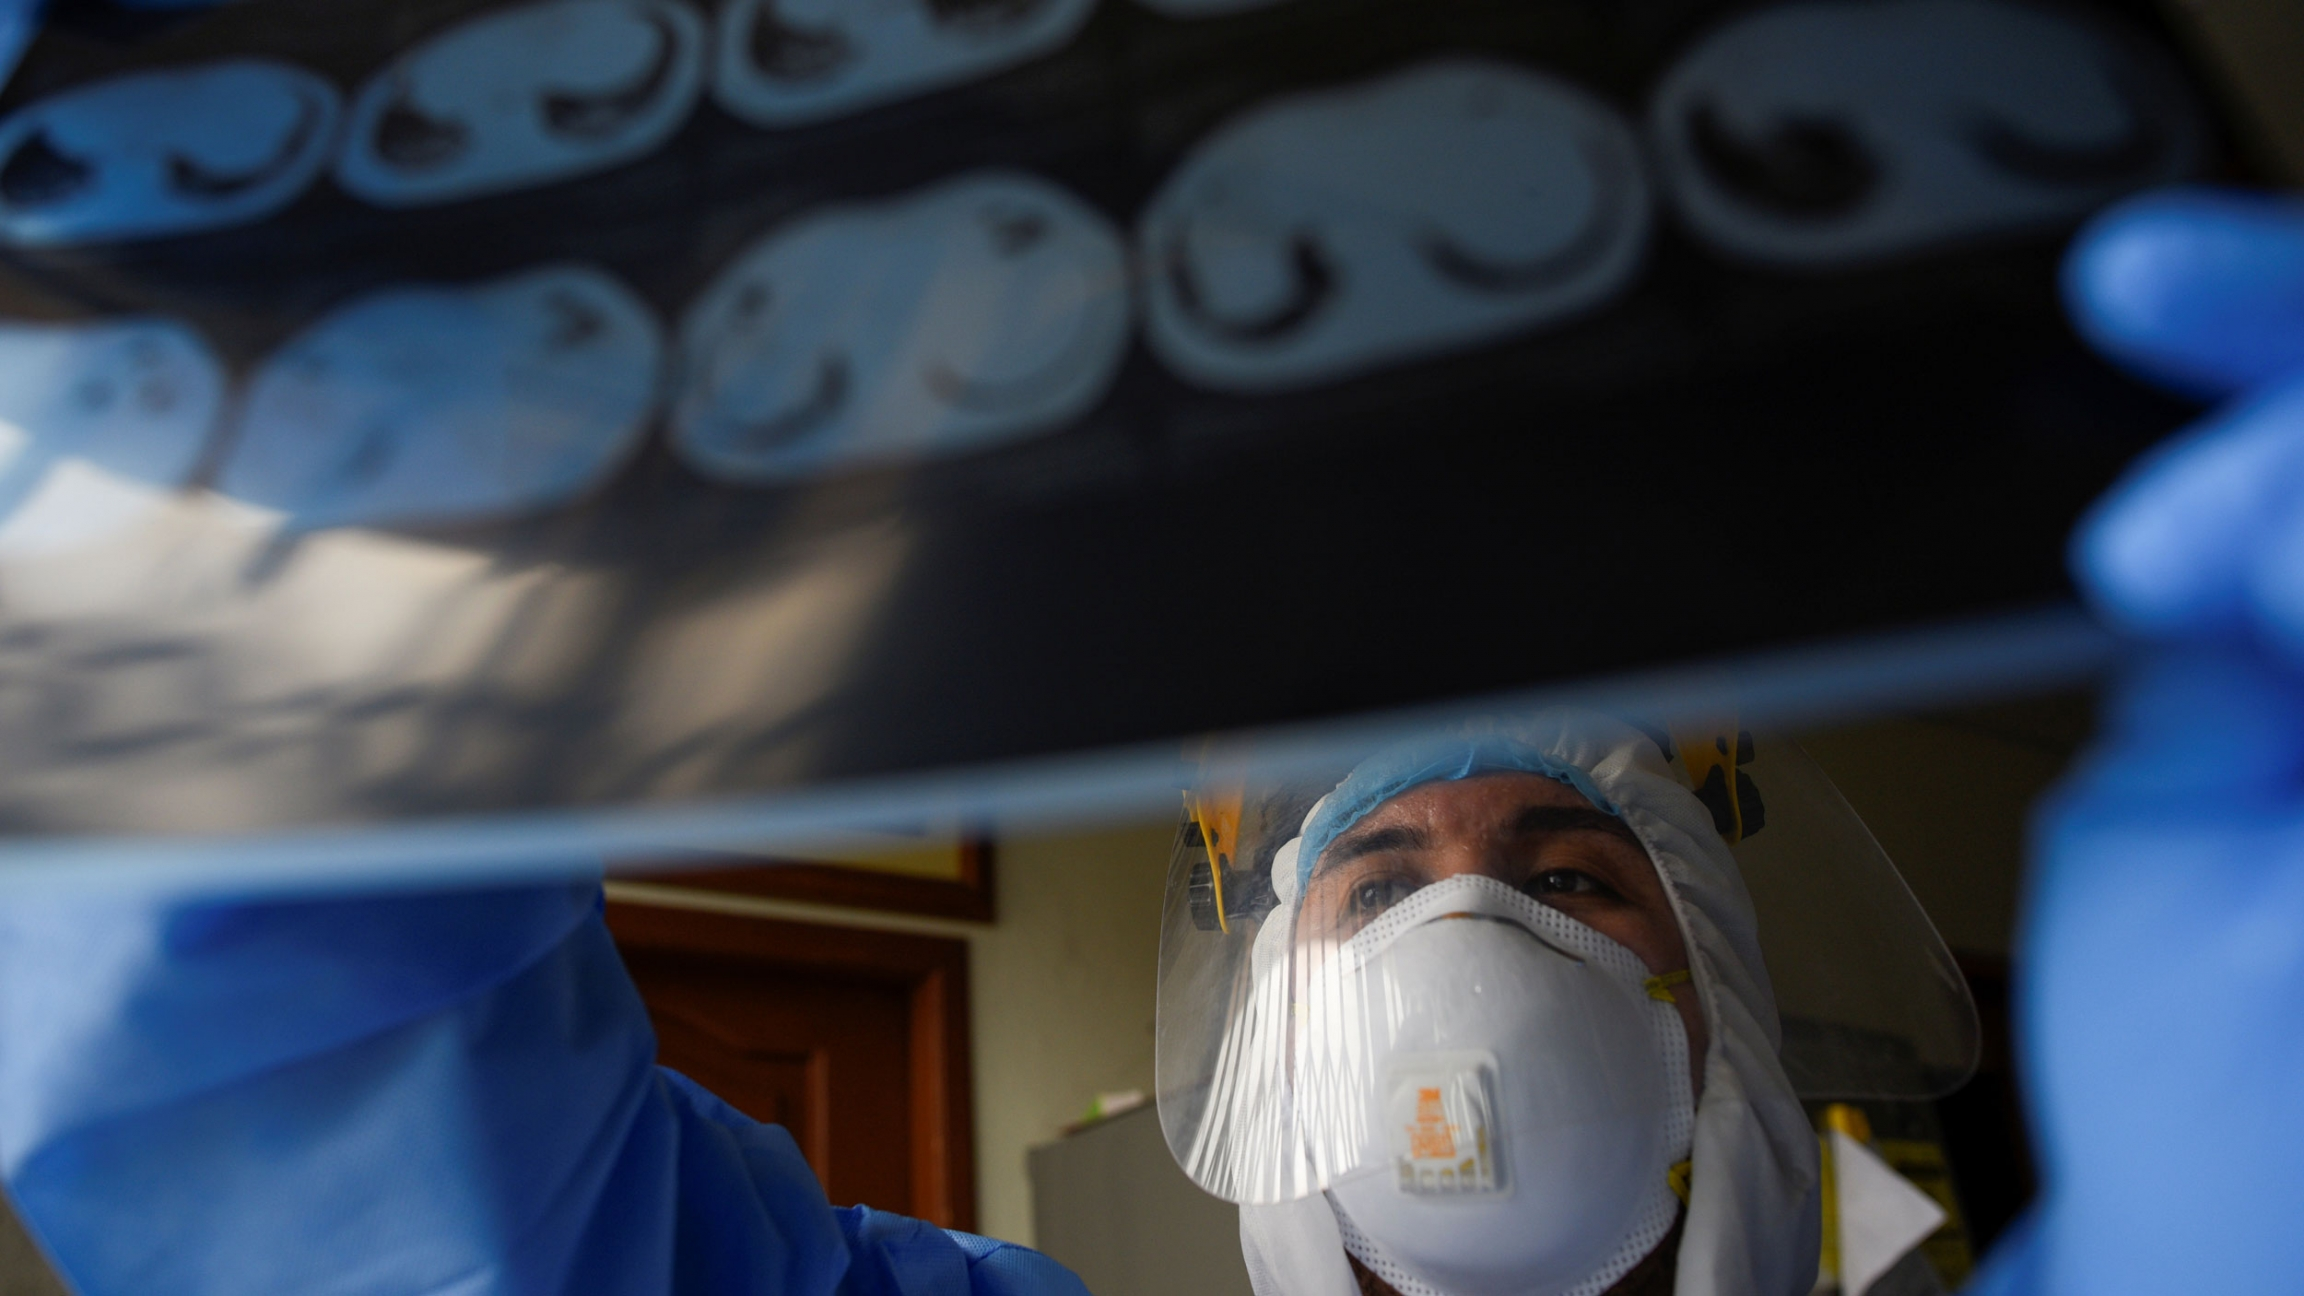 A doctor is shown wearing protective medical clothing and a face shield while holding up a X-ray photo of a patient's lungs.